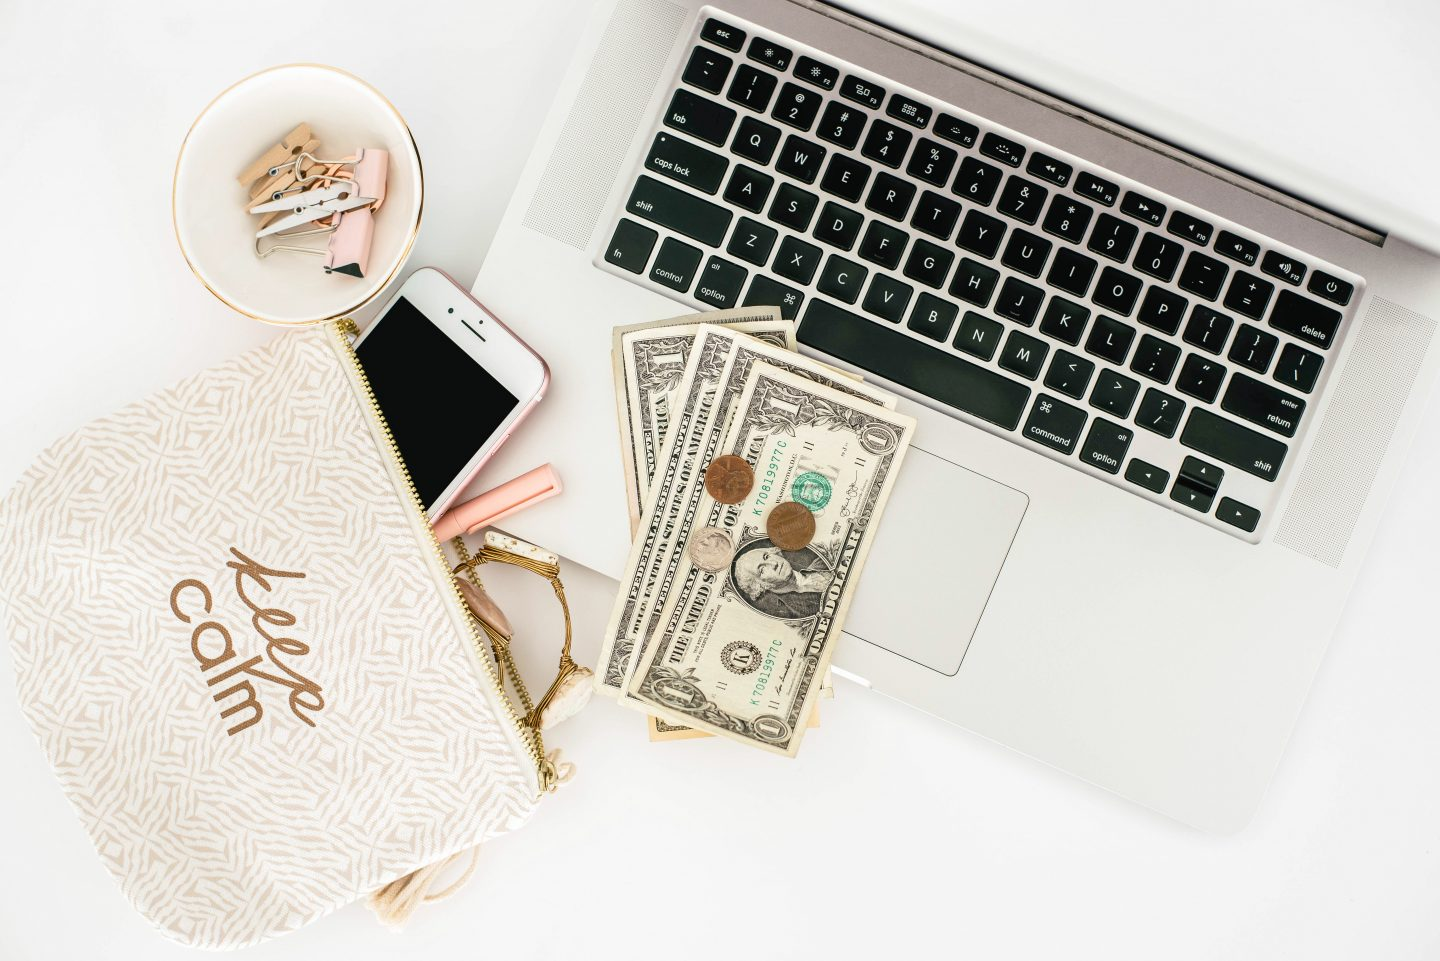 7 Money-Saving Tips That Produce Results